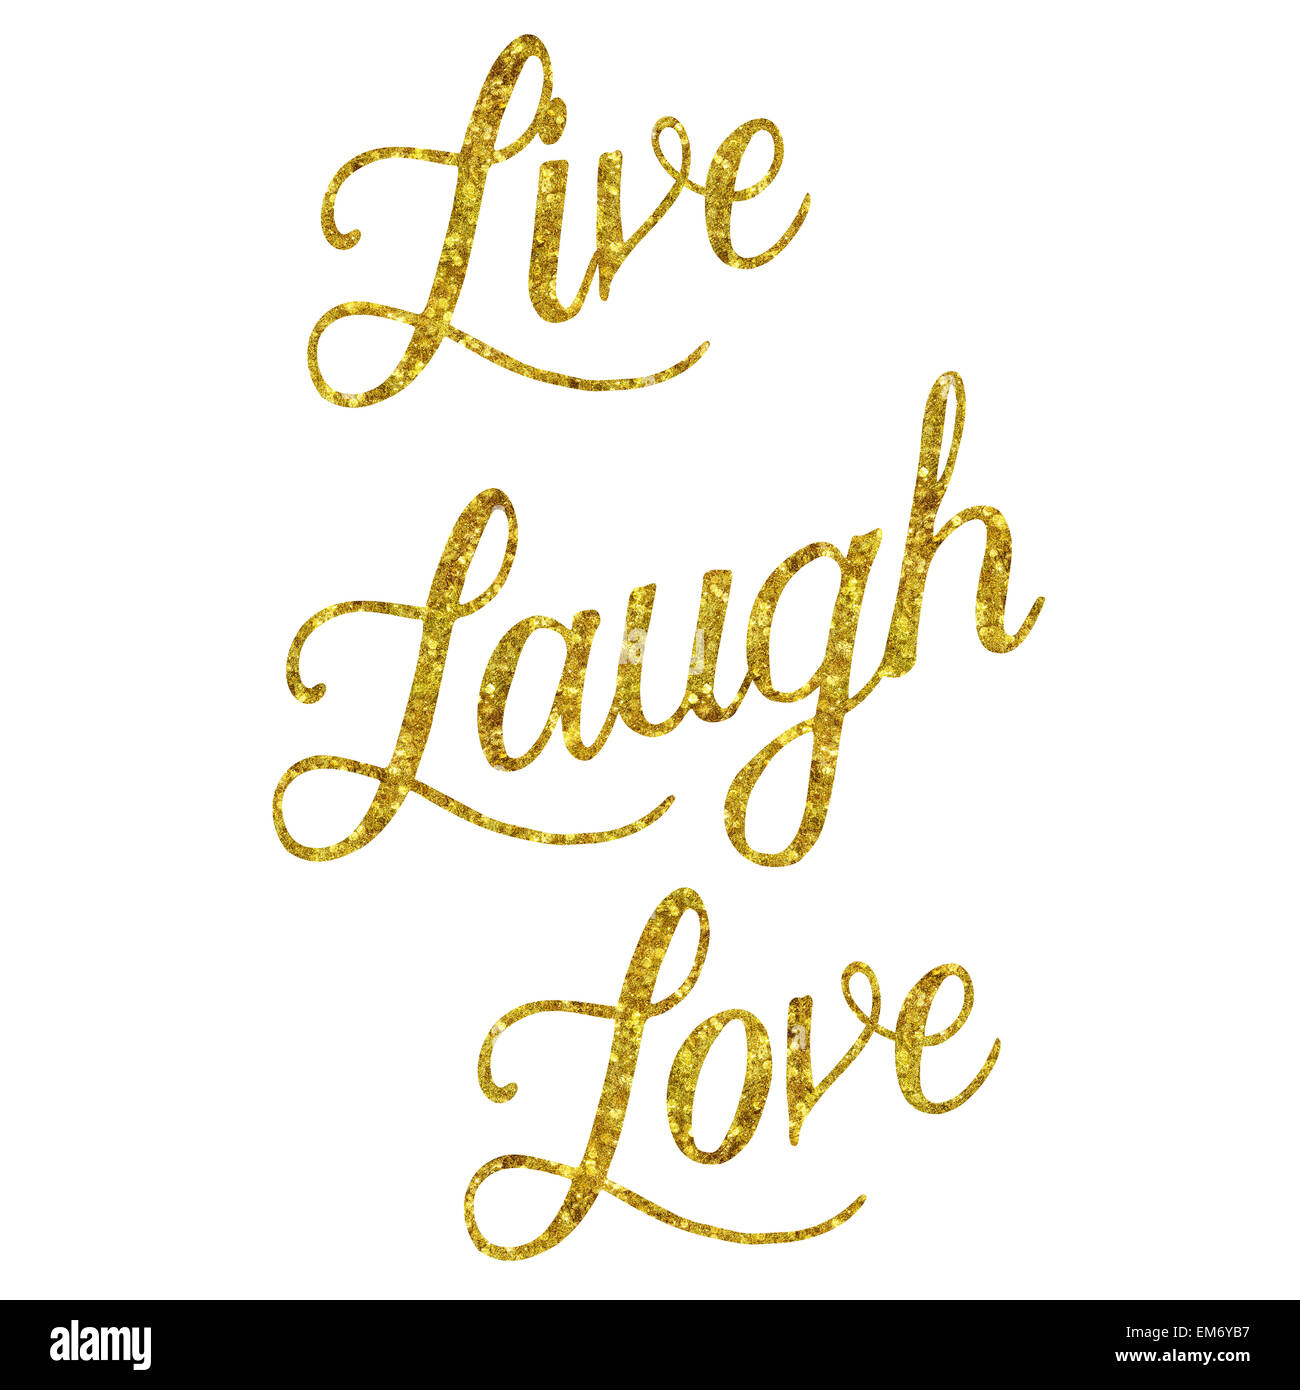 Live Gold Quotes Unique Live Gold Quotes  Quotes Of The Day